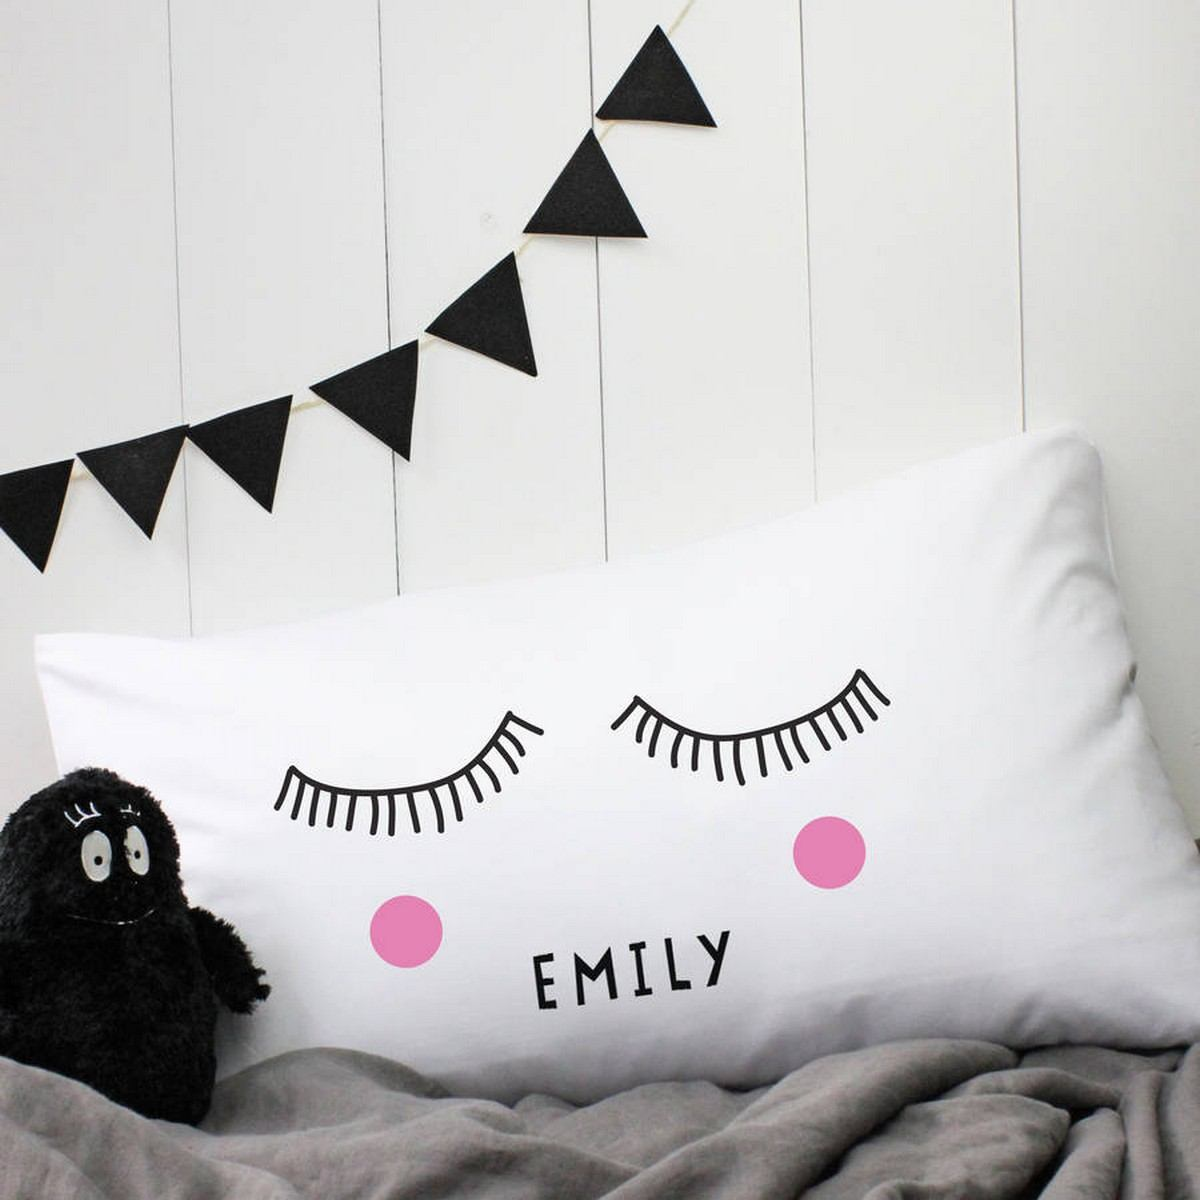 Adorable Pillows to Brighten Up Any Kid